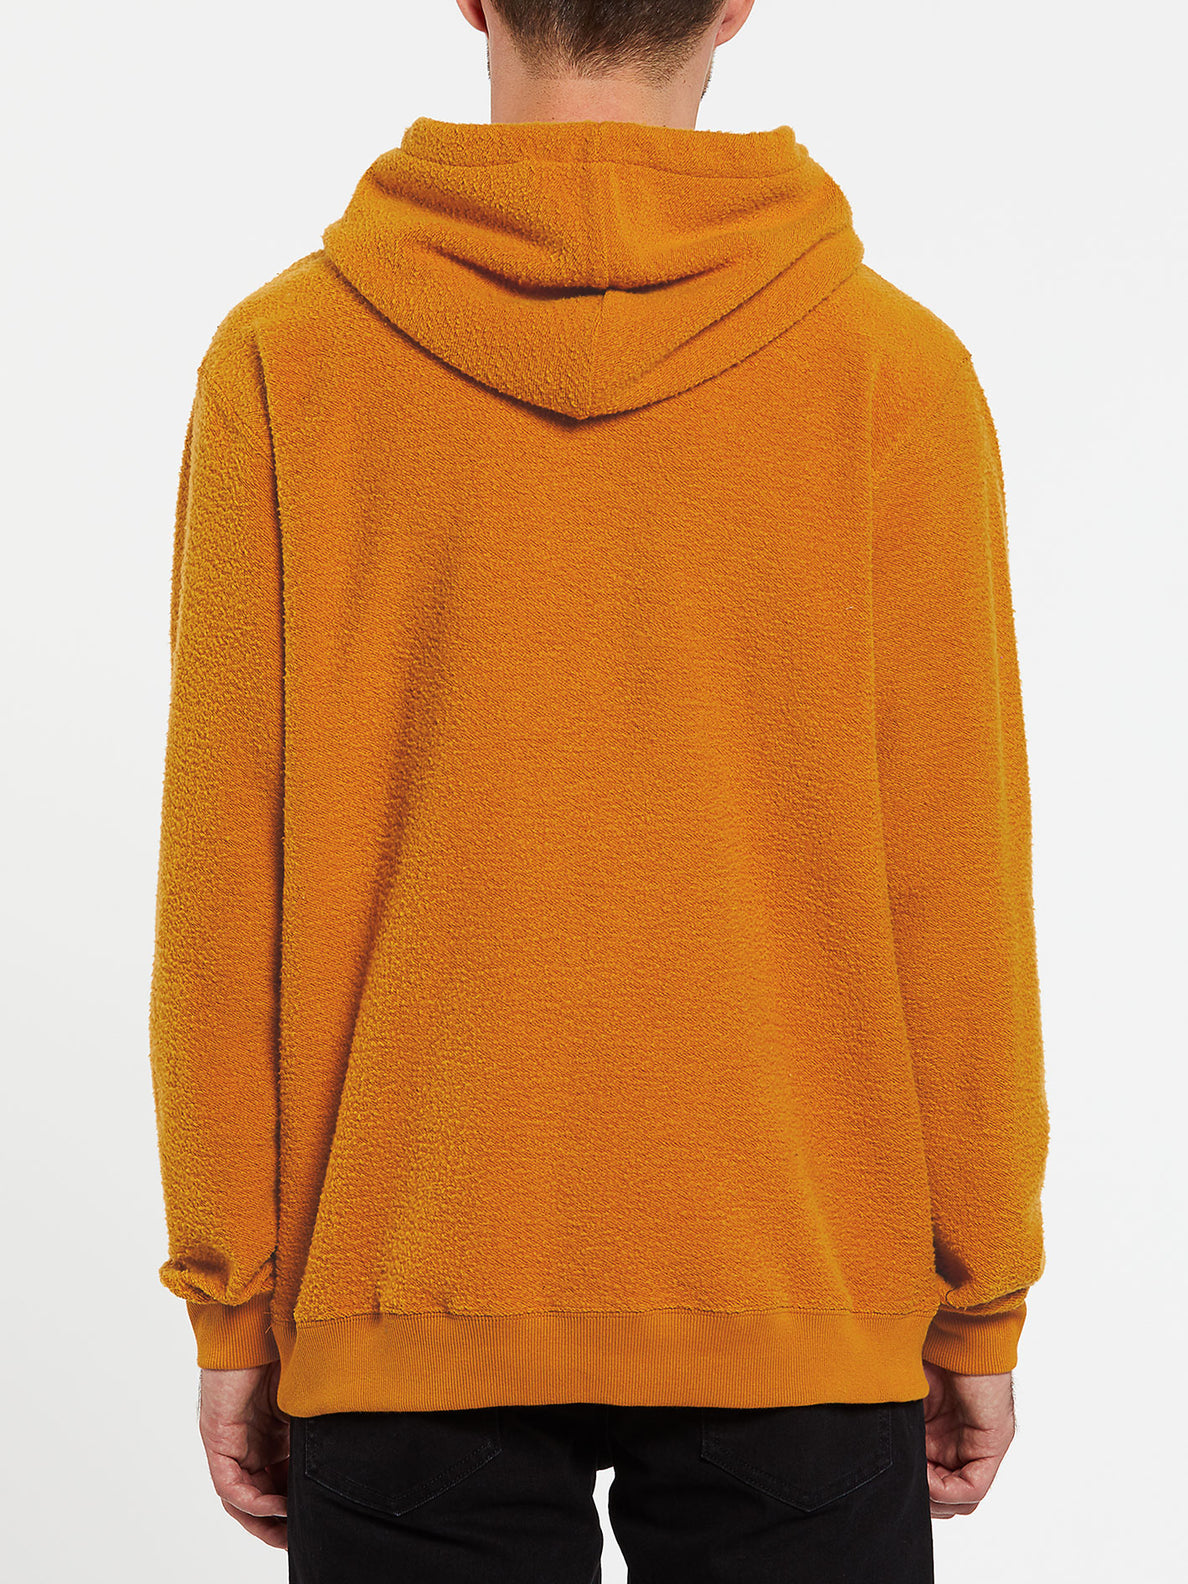 Hever Pullover - Inca Gold (A4132012_IGD) [B]